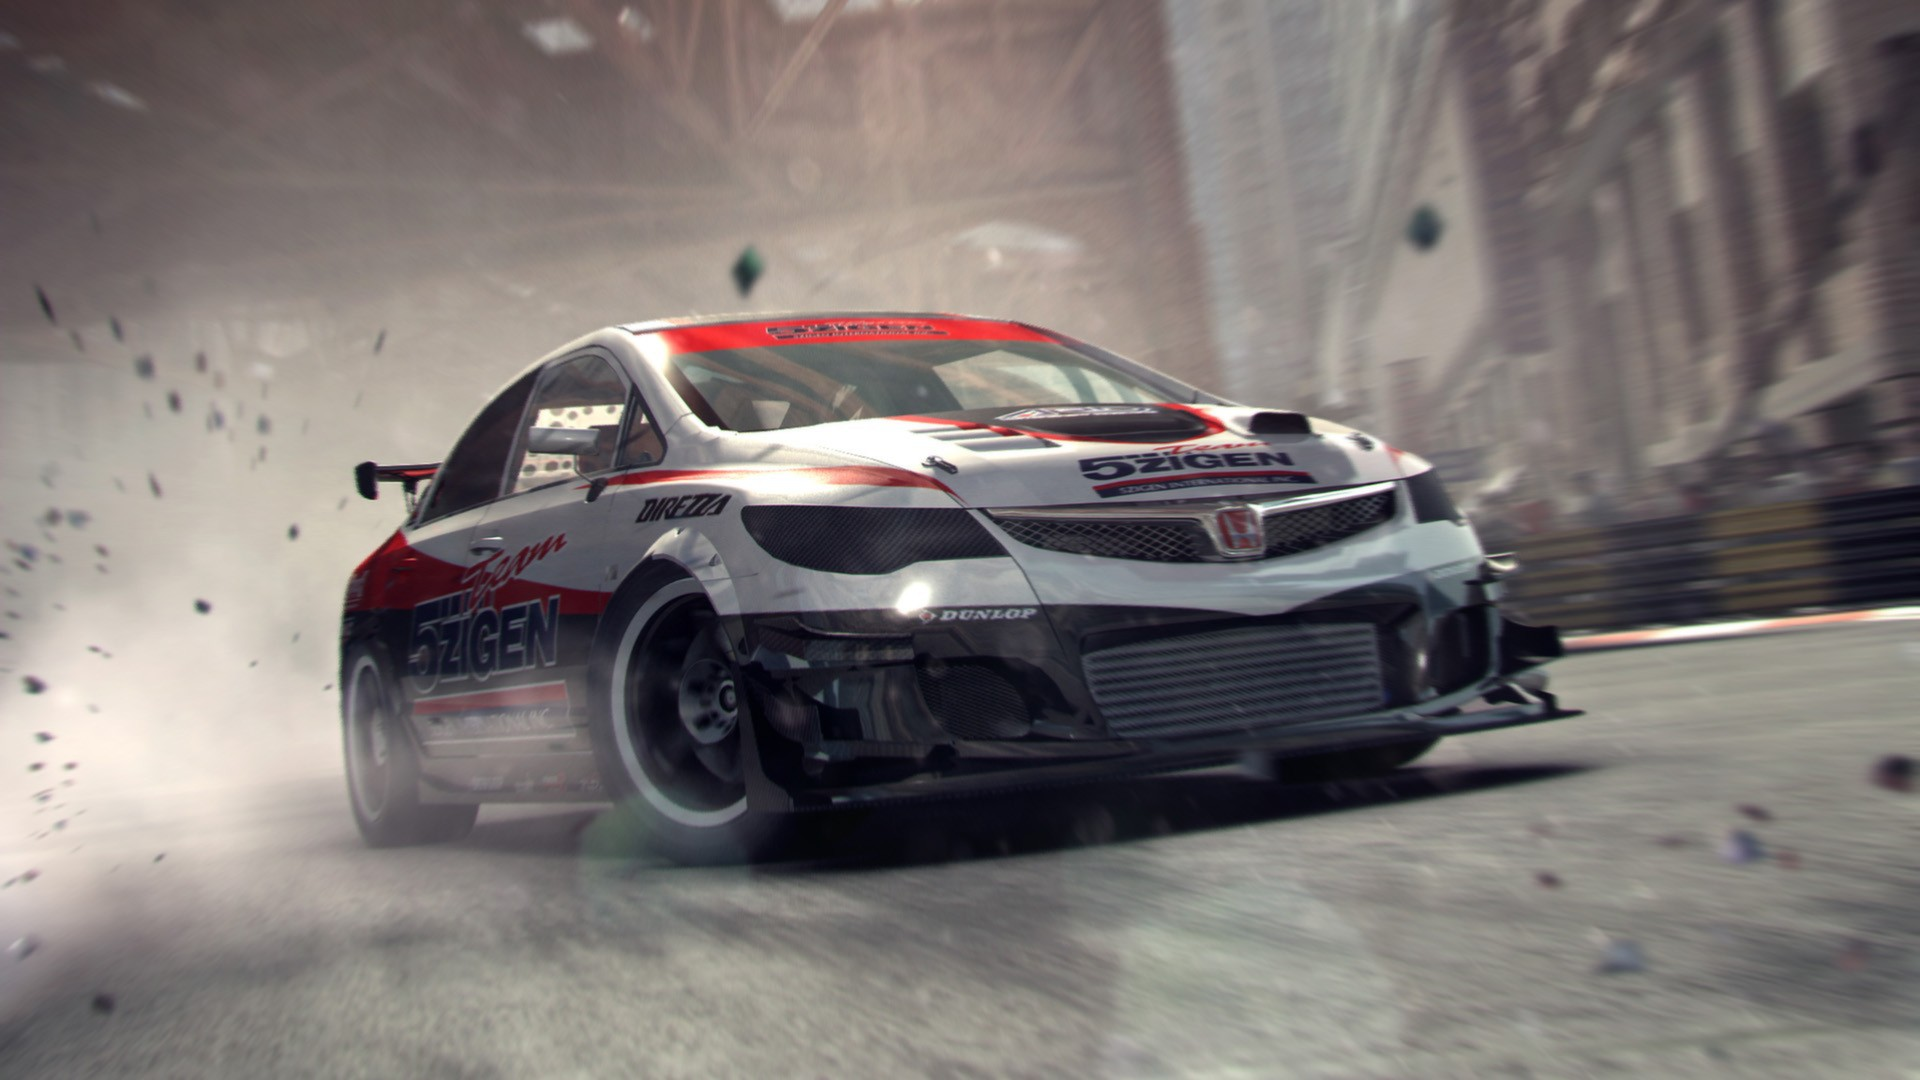 Grid 2 has been delisted from digital marketplaces